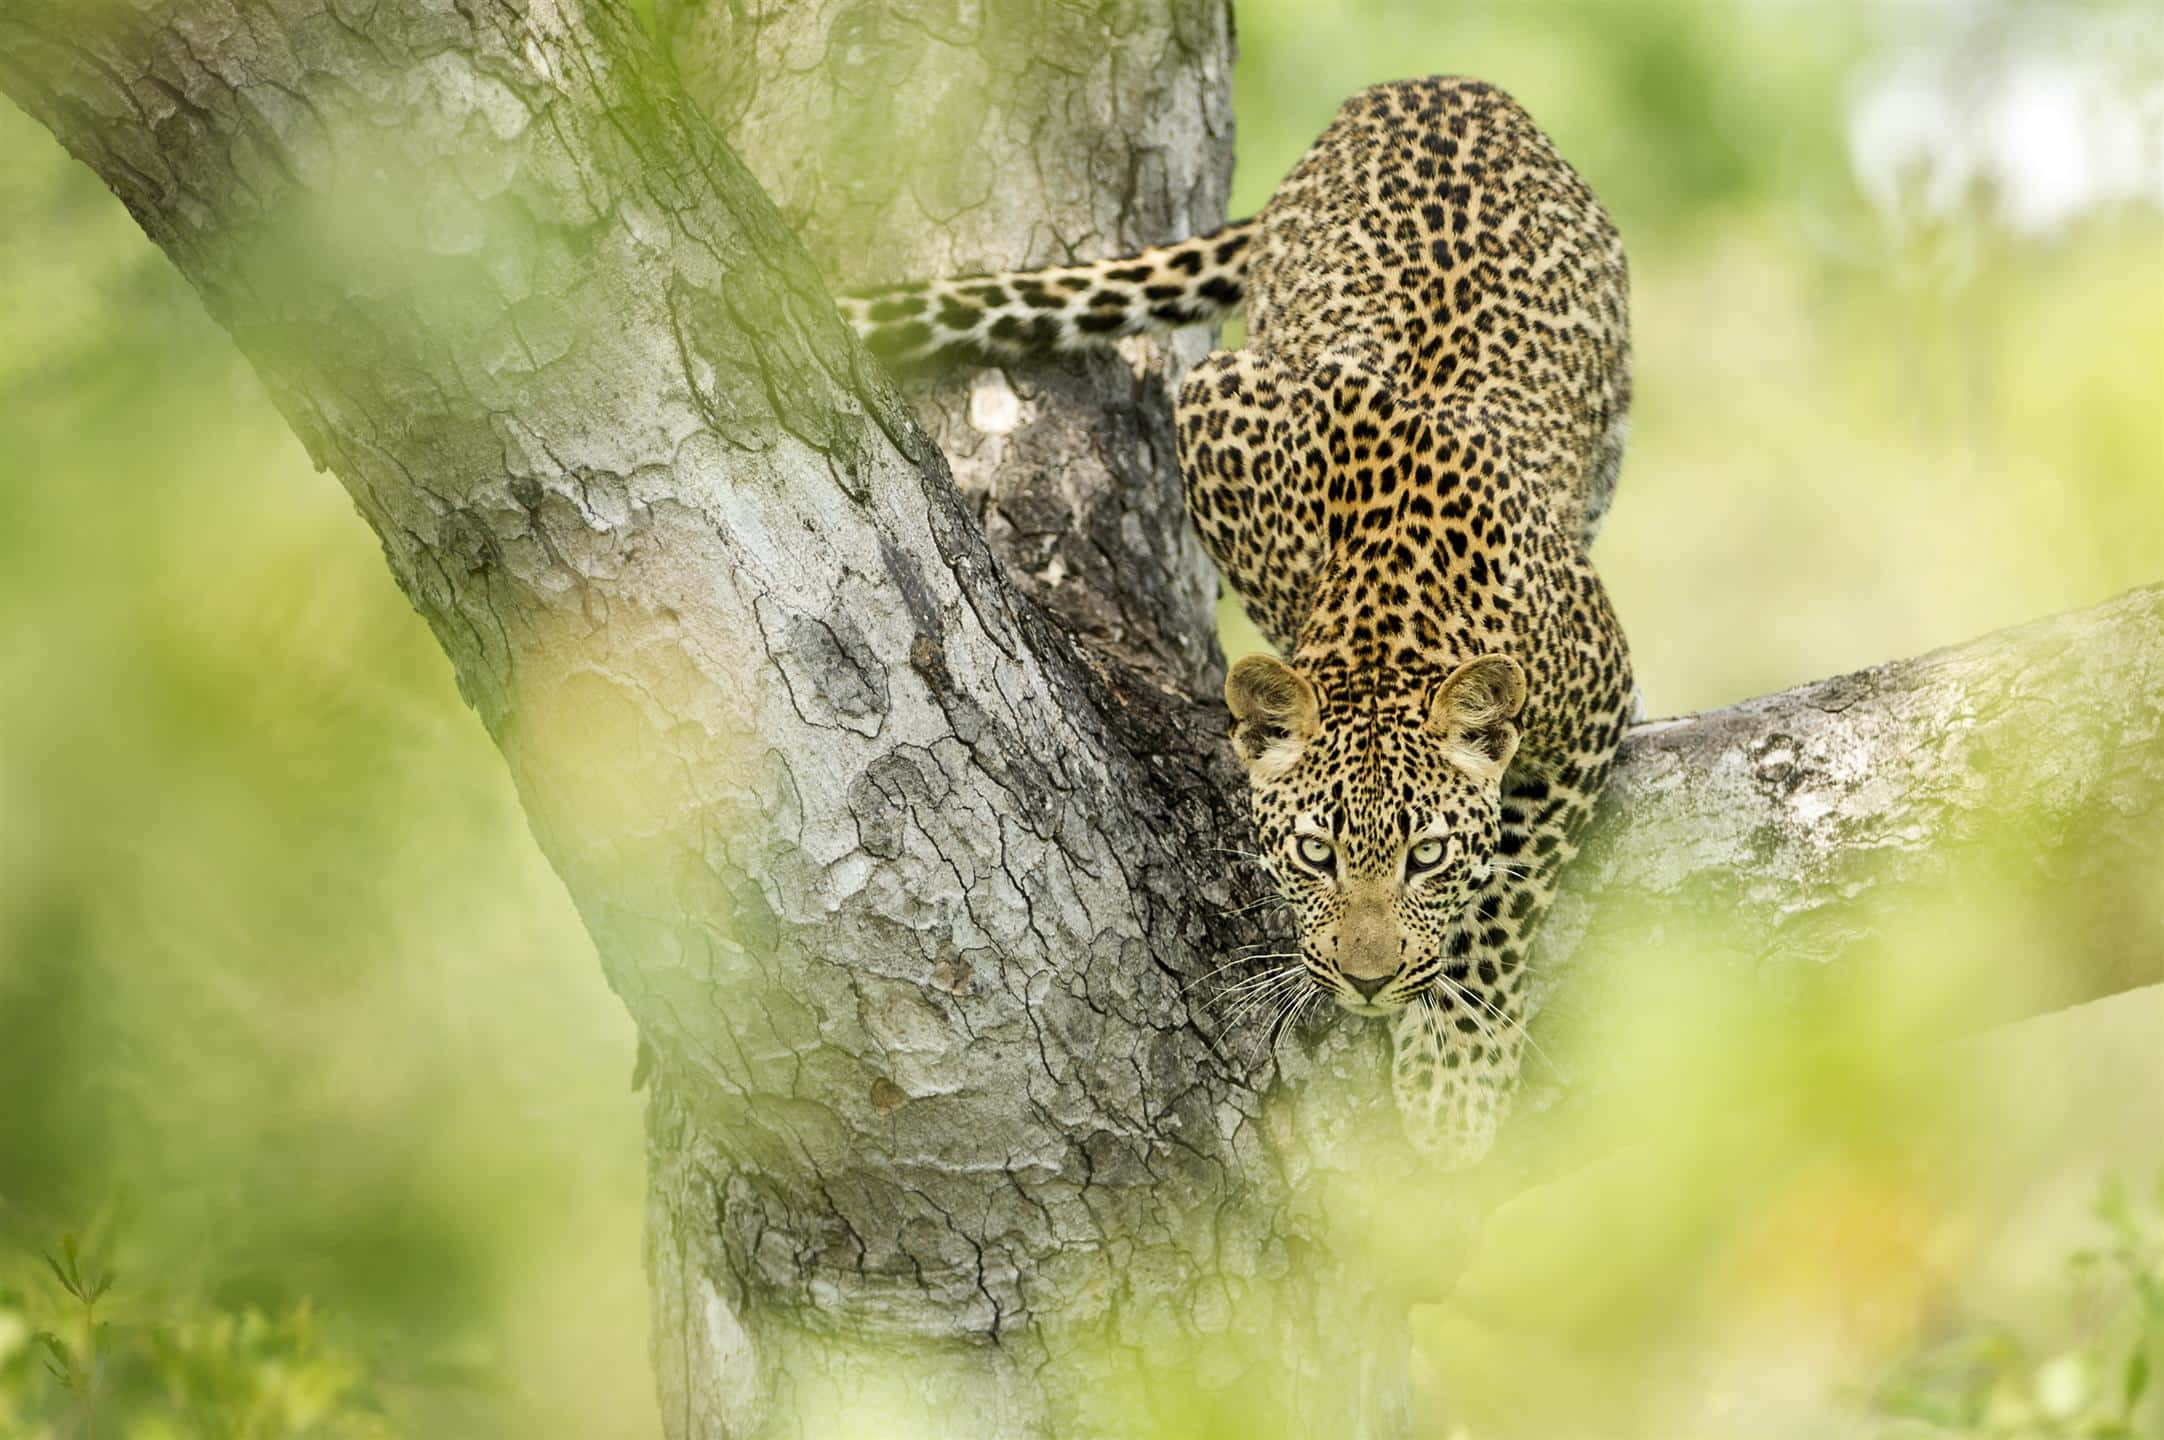 Leopard at Singita Sabi Sand